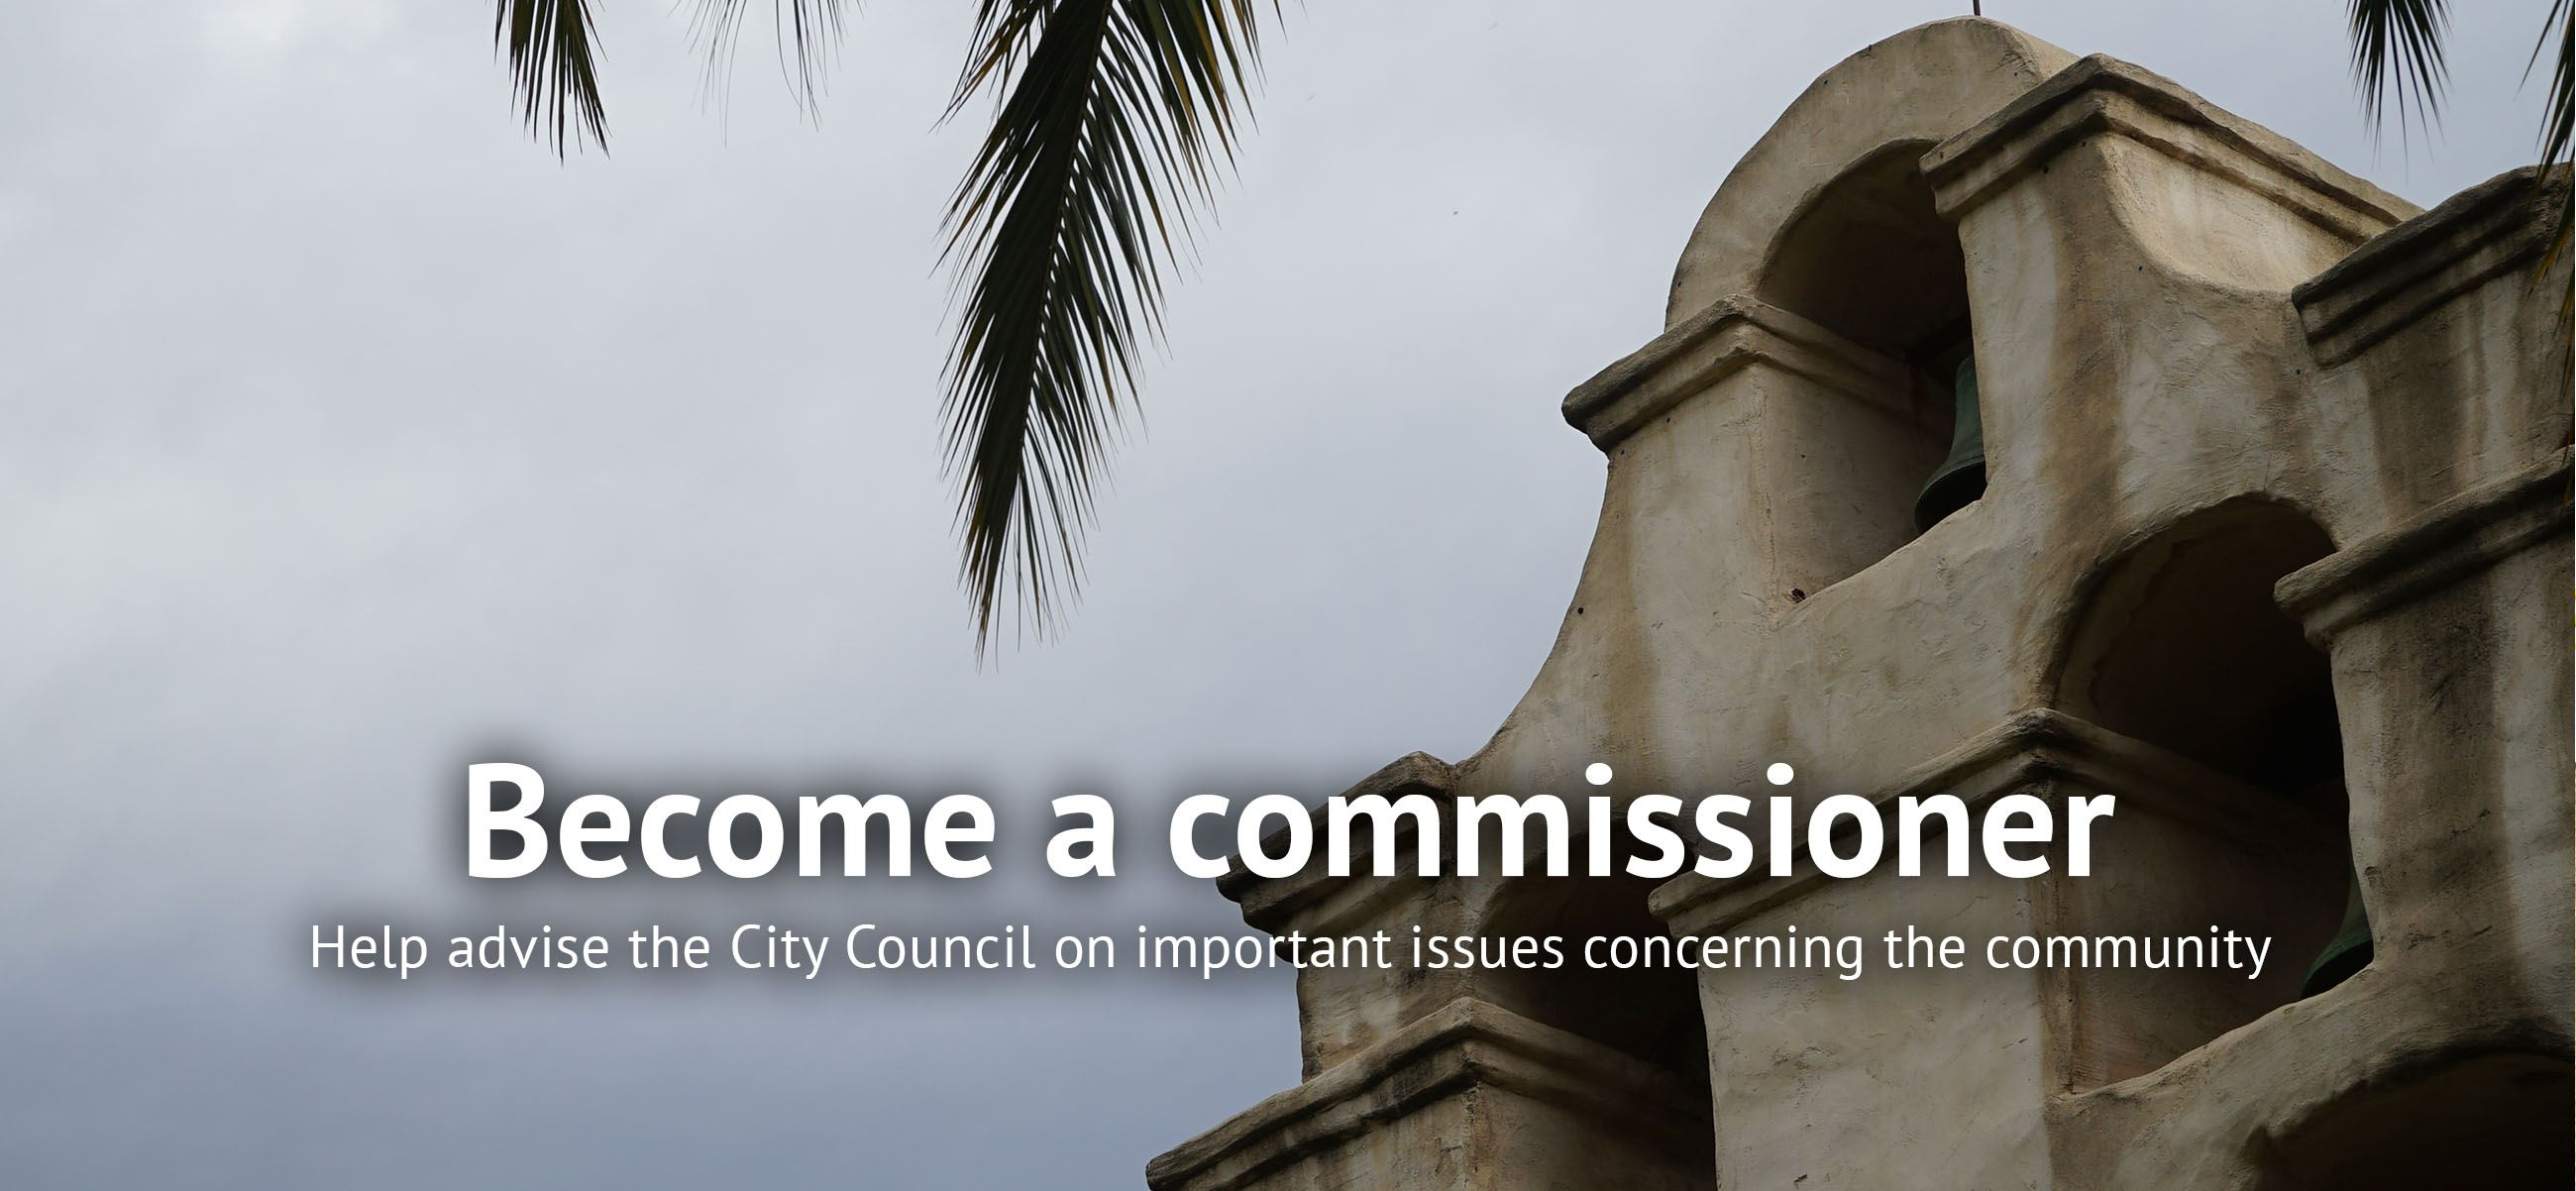 Help advise the City Council on important issues concerning the community